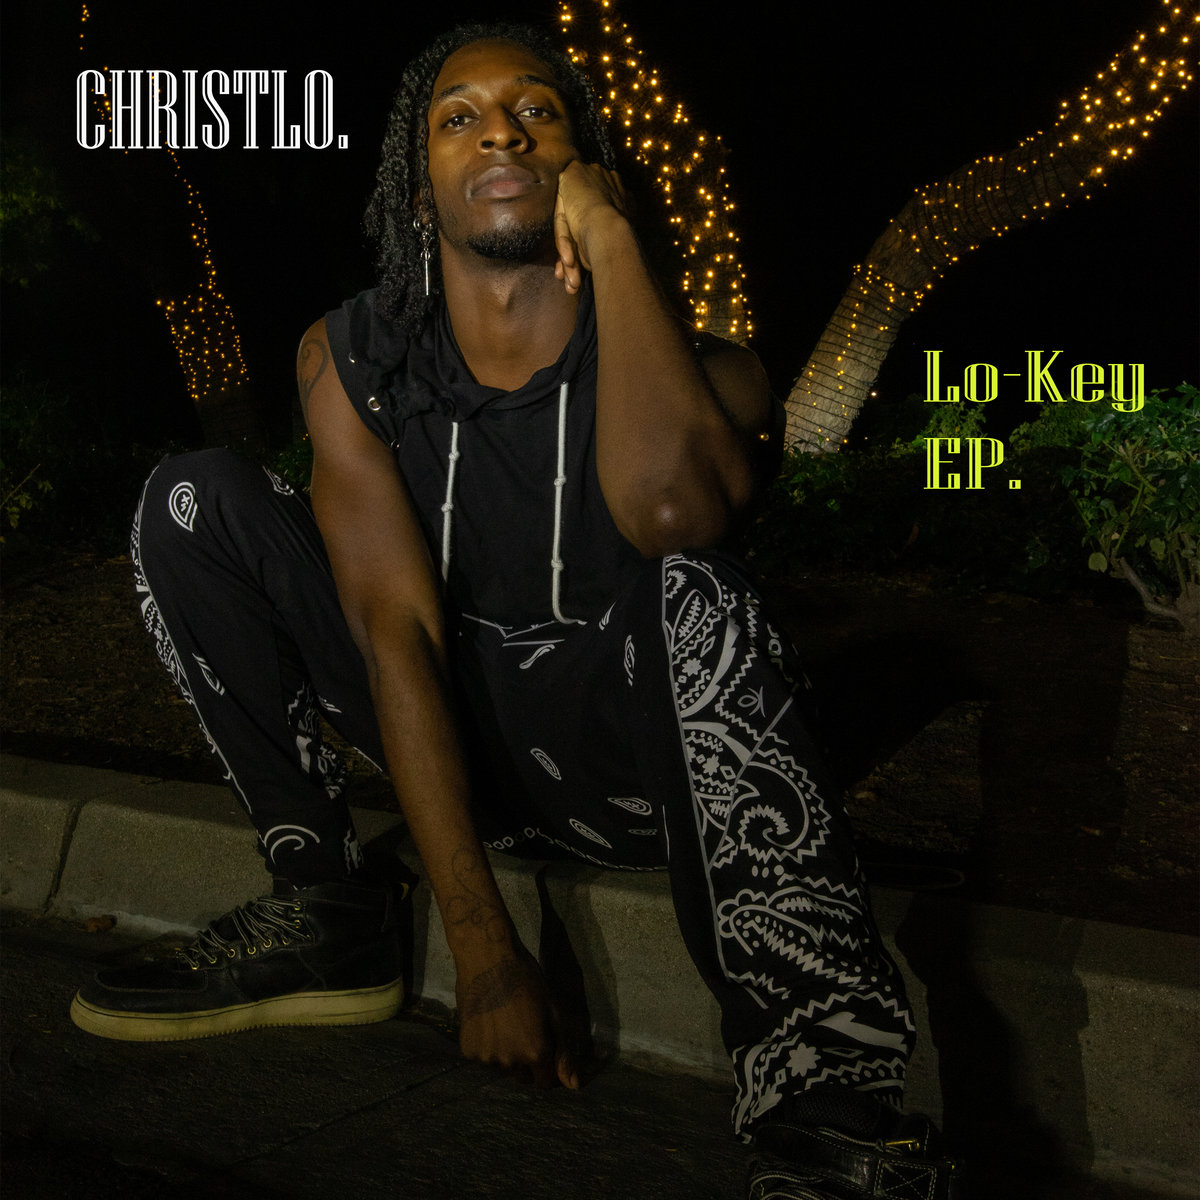 Music Review: Lo-Key by Christlo